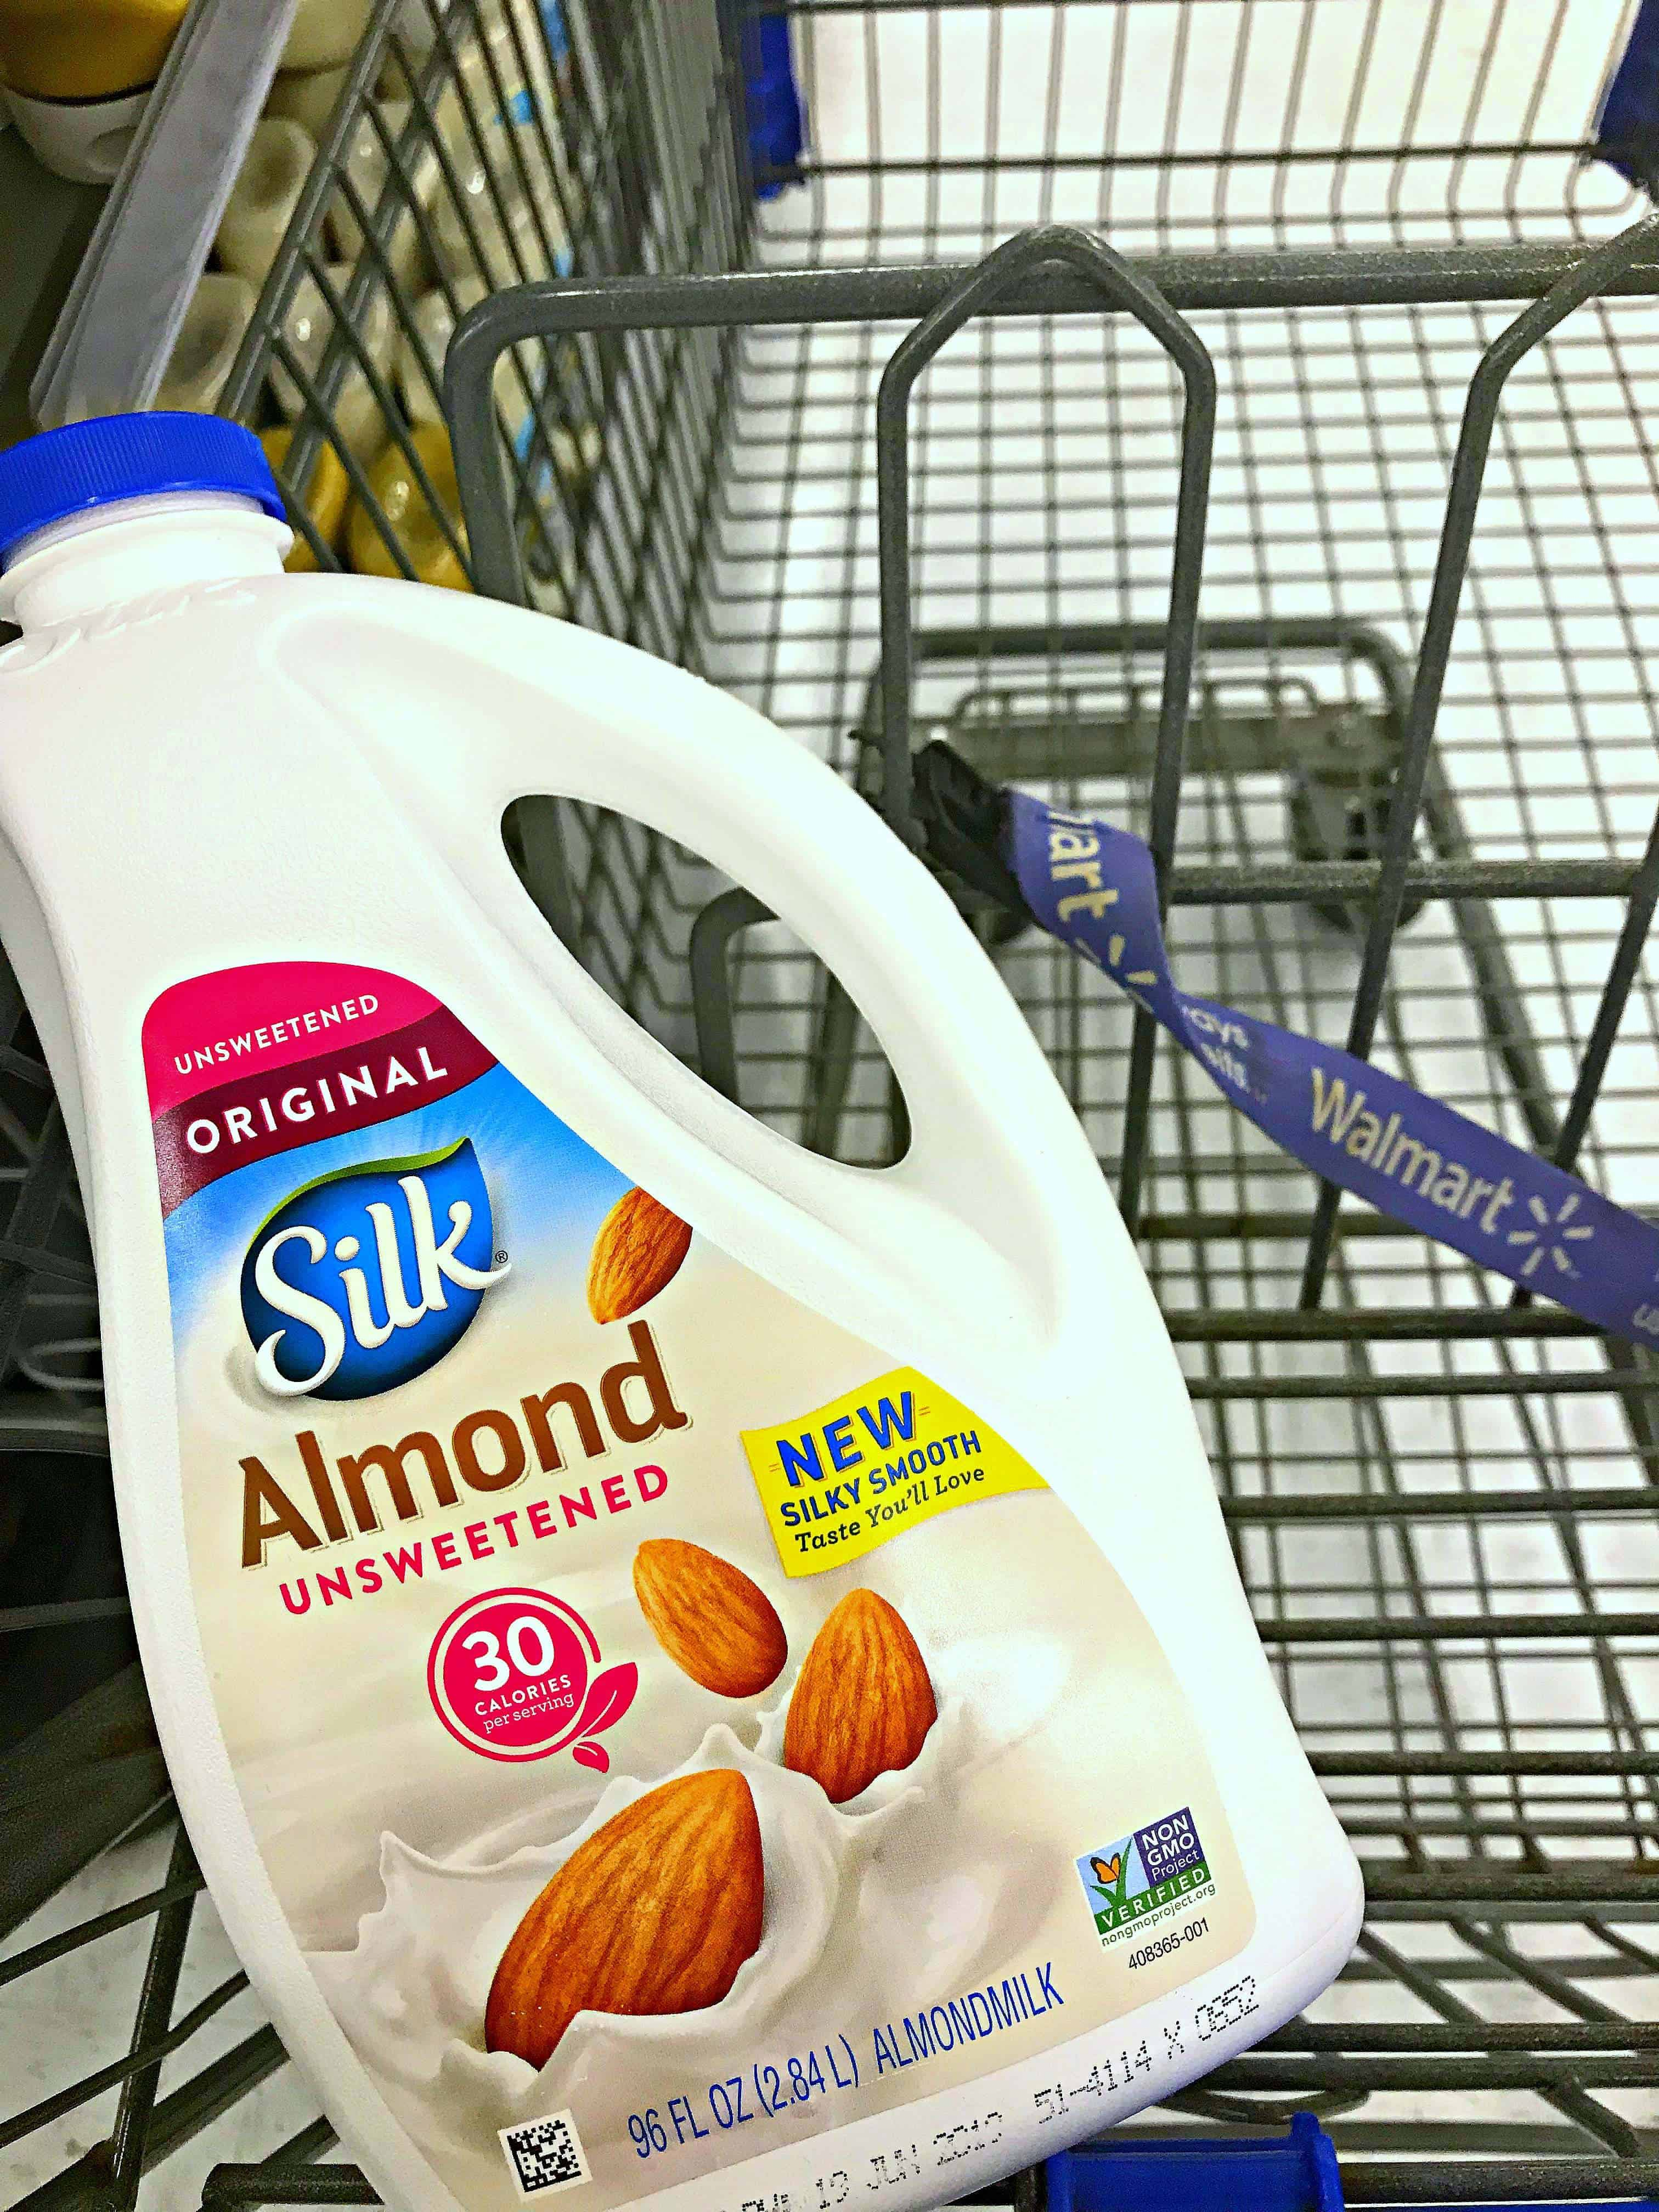 Silk Almondmilk in a cart at Walmart